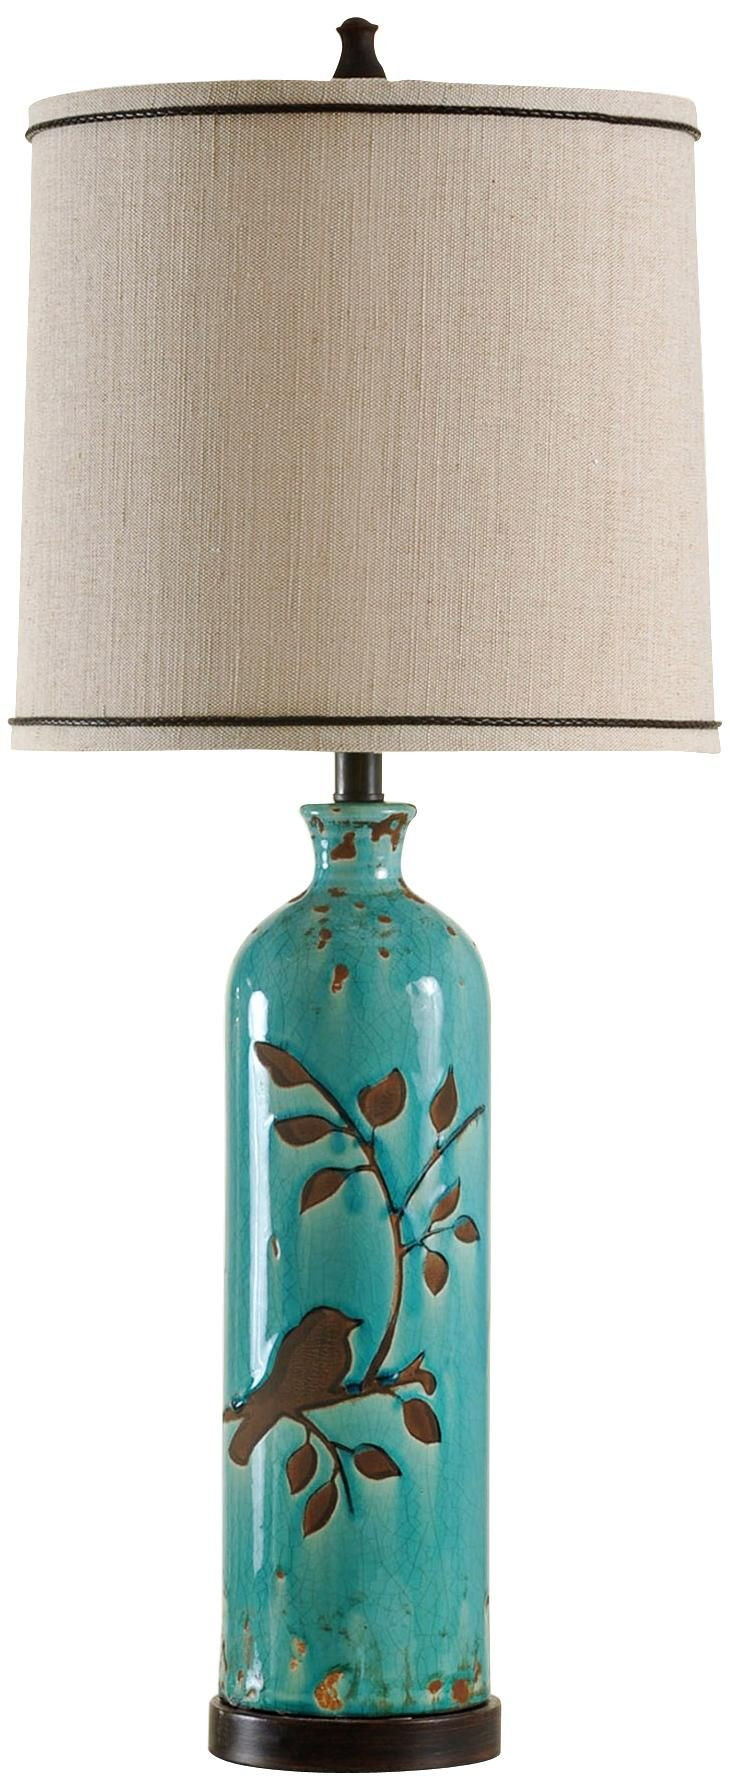 Amazing Adele Ceramic Foliage And Bird Turquoise Table Lamp   Like The Bird Design.  Could It